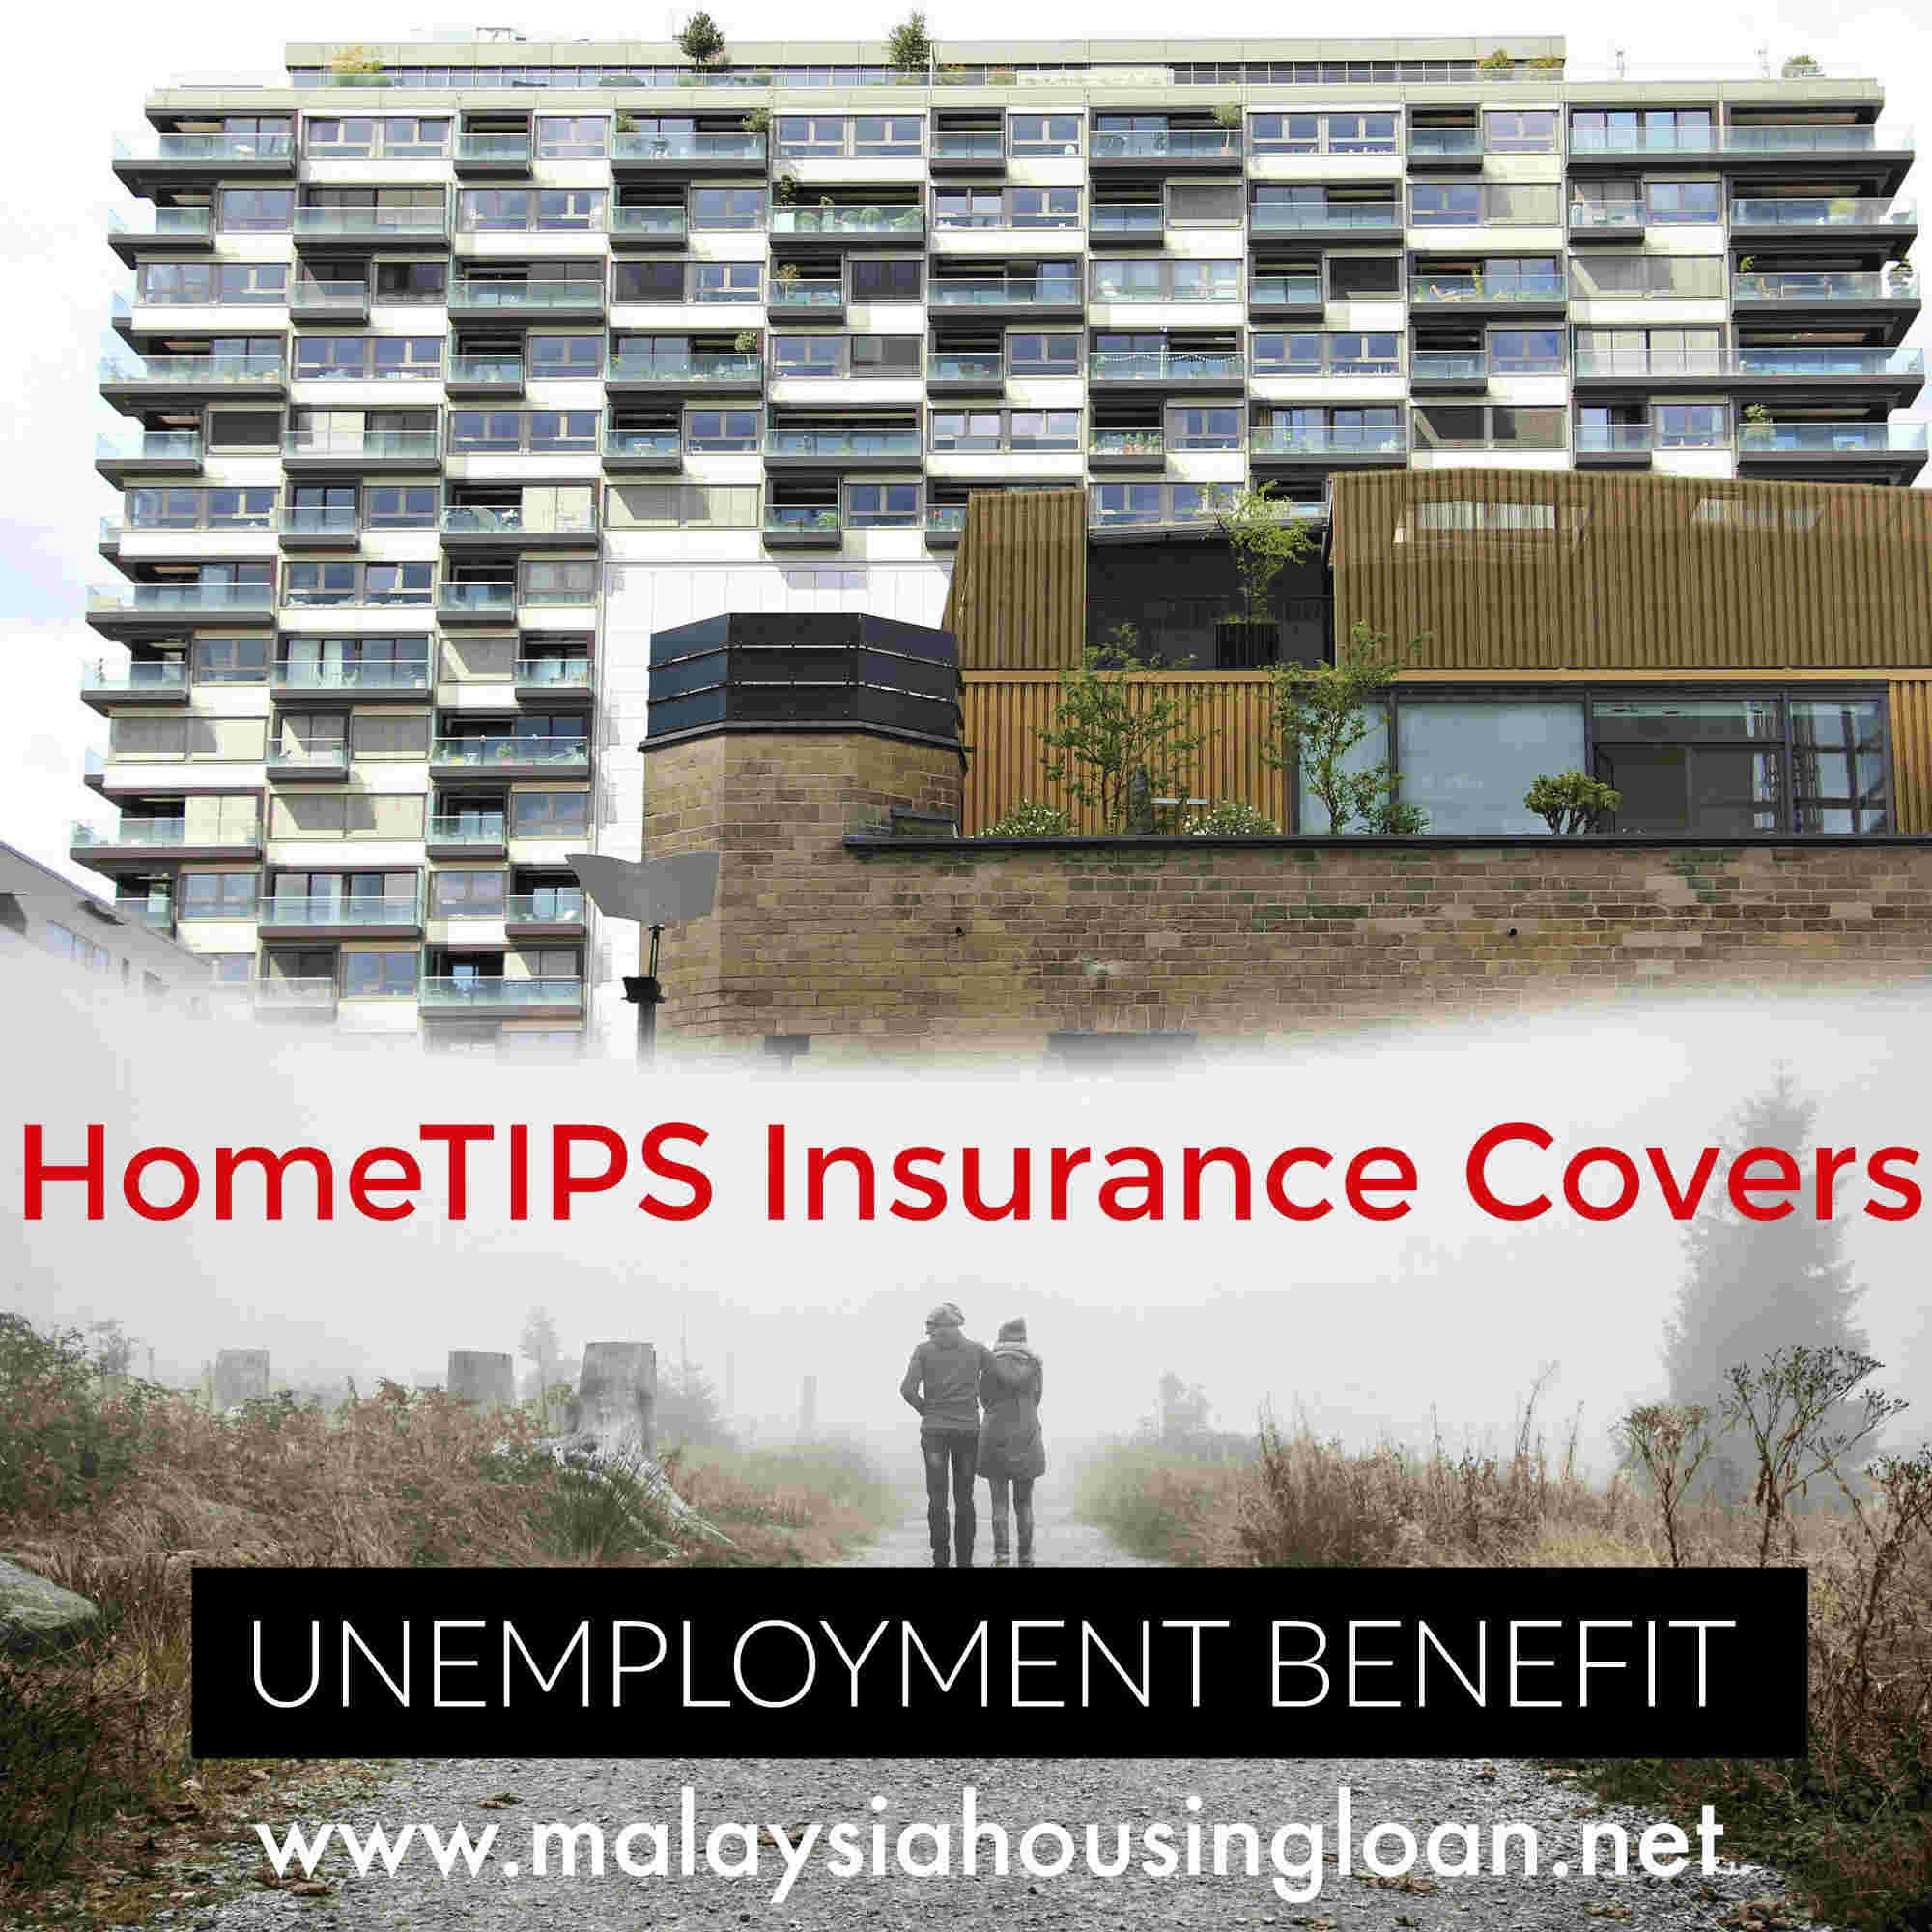 employment and unemployment insurance schemes Unemployment insurance benefits are taxable self-employment assistance self-employment assistance offers unemployed workers the opportunity to create their own jobs by starting their own small businesses this is a voluntary program offered by delaware.